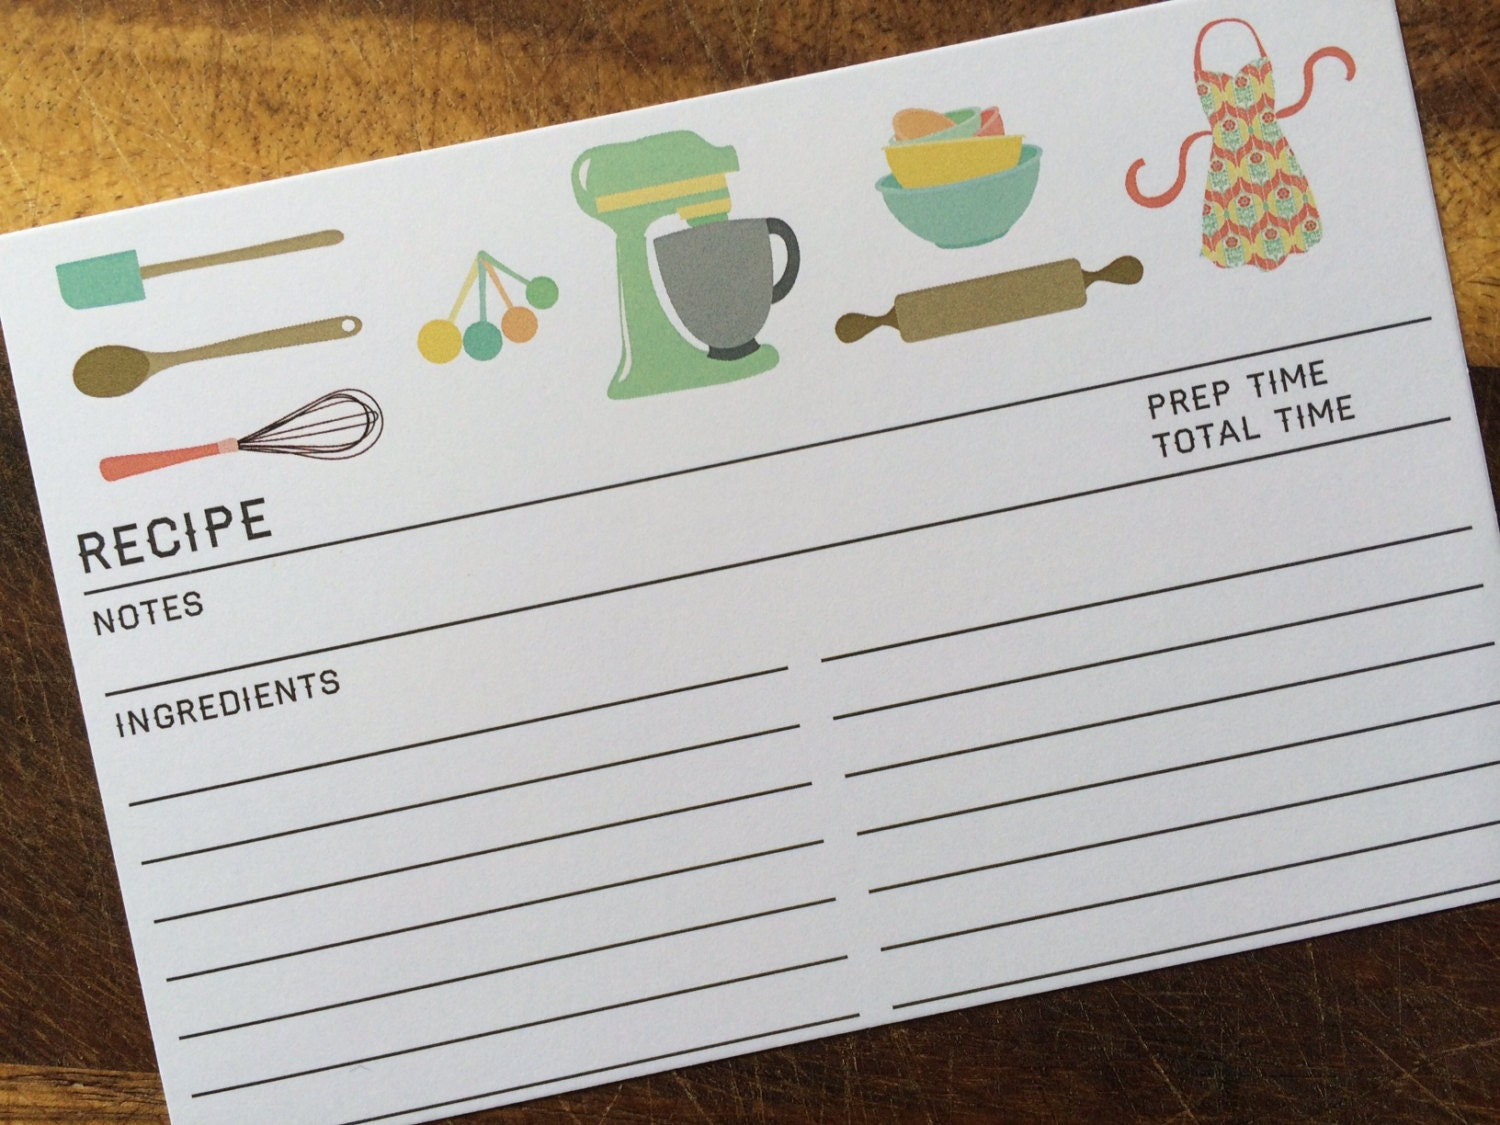 Wedding Gift Recipe Cards : 30 RECIPE CARDS Vintage Wedding Kitchen Shower Gift Couples